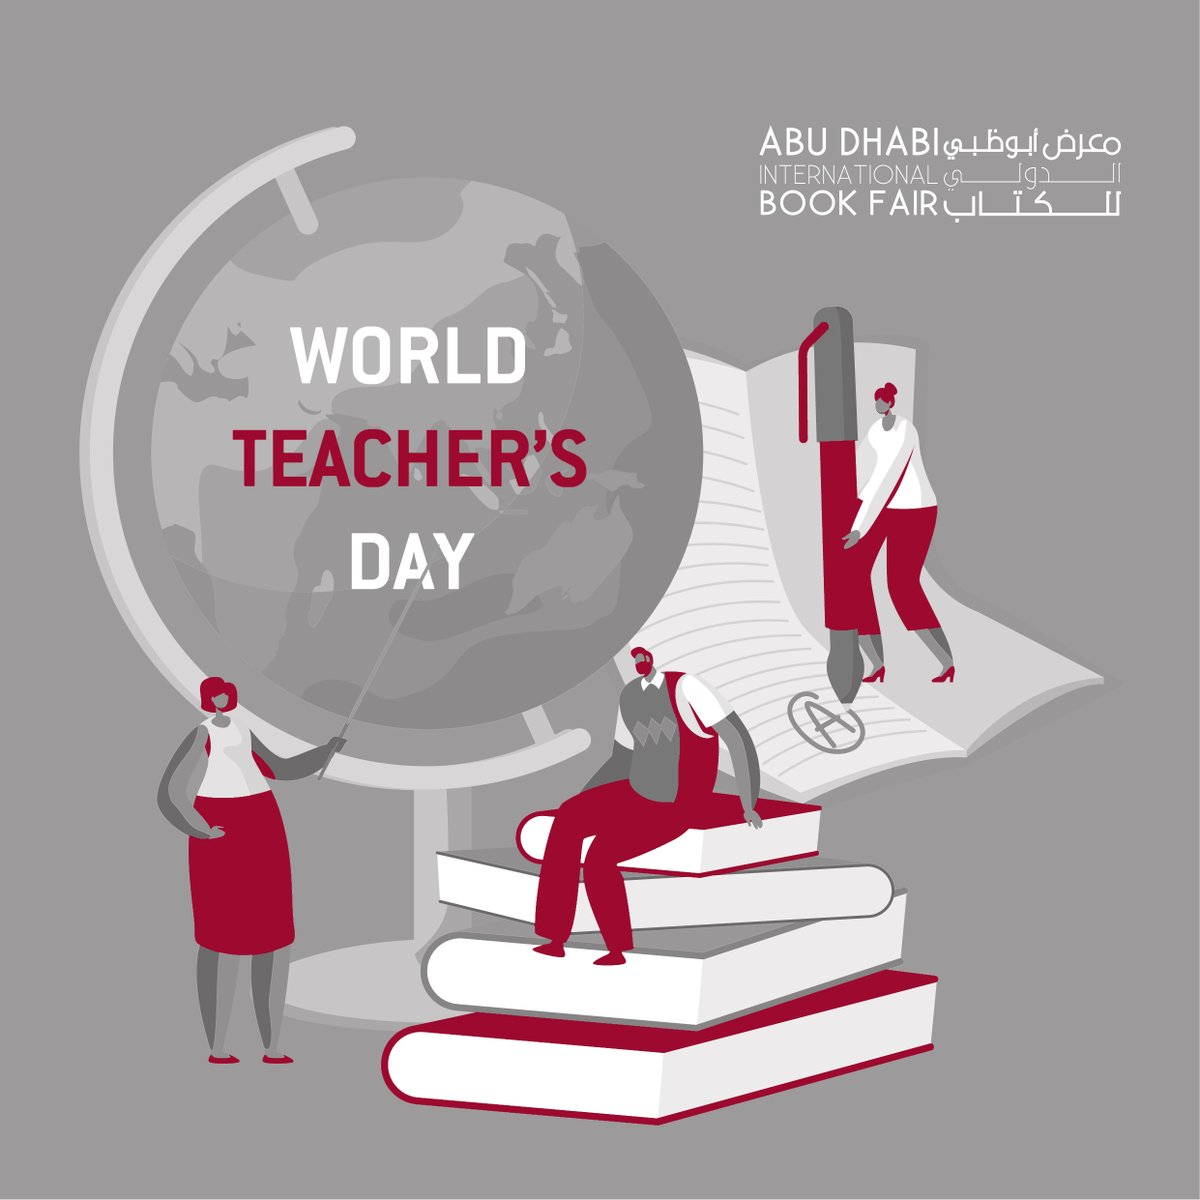 #WorldTeachersDay. Please like, retweet your amazing teacher by telling us their name, school or university and why they are wonderful. Let's help share the ❤️for our hardworking teachers.  #ADIBF #Reading #Books #Culture #InAbuDhabi #CulturAll https://t.co/js3NrR11Wo